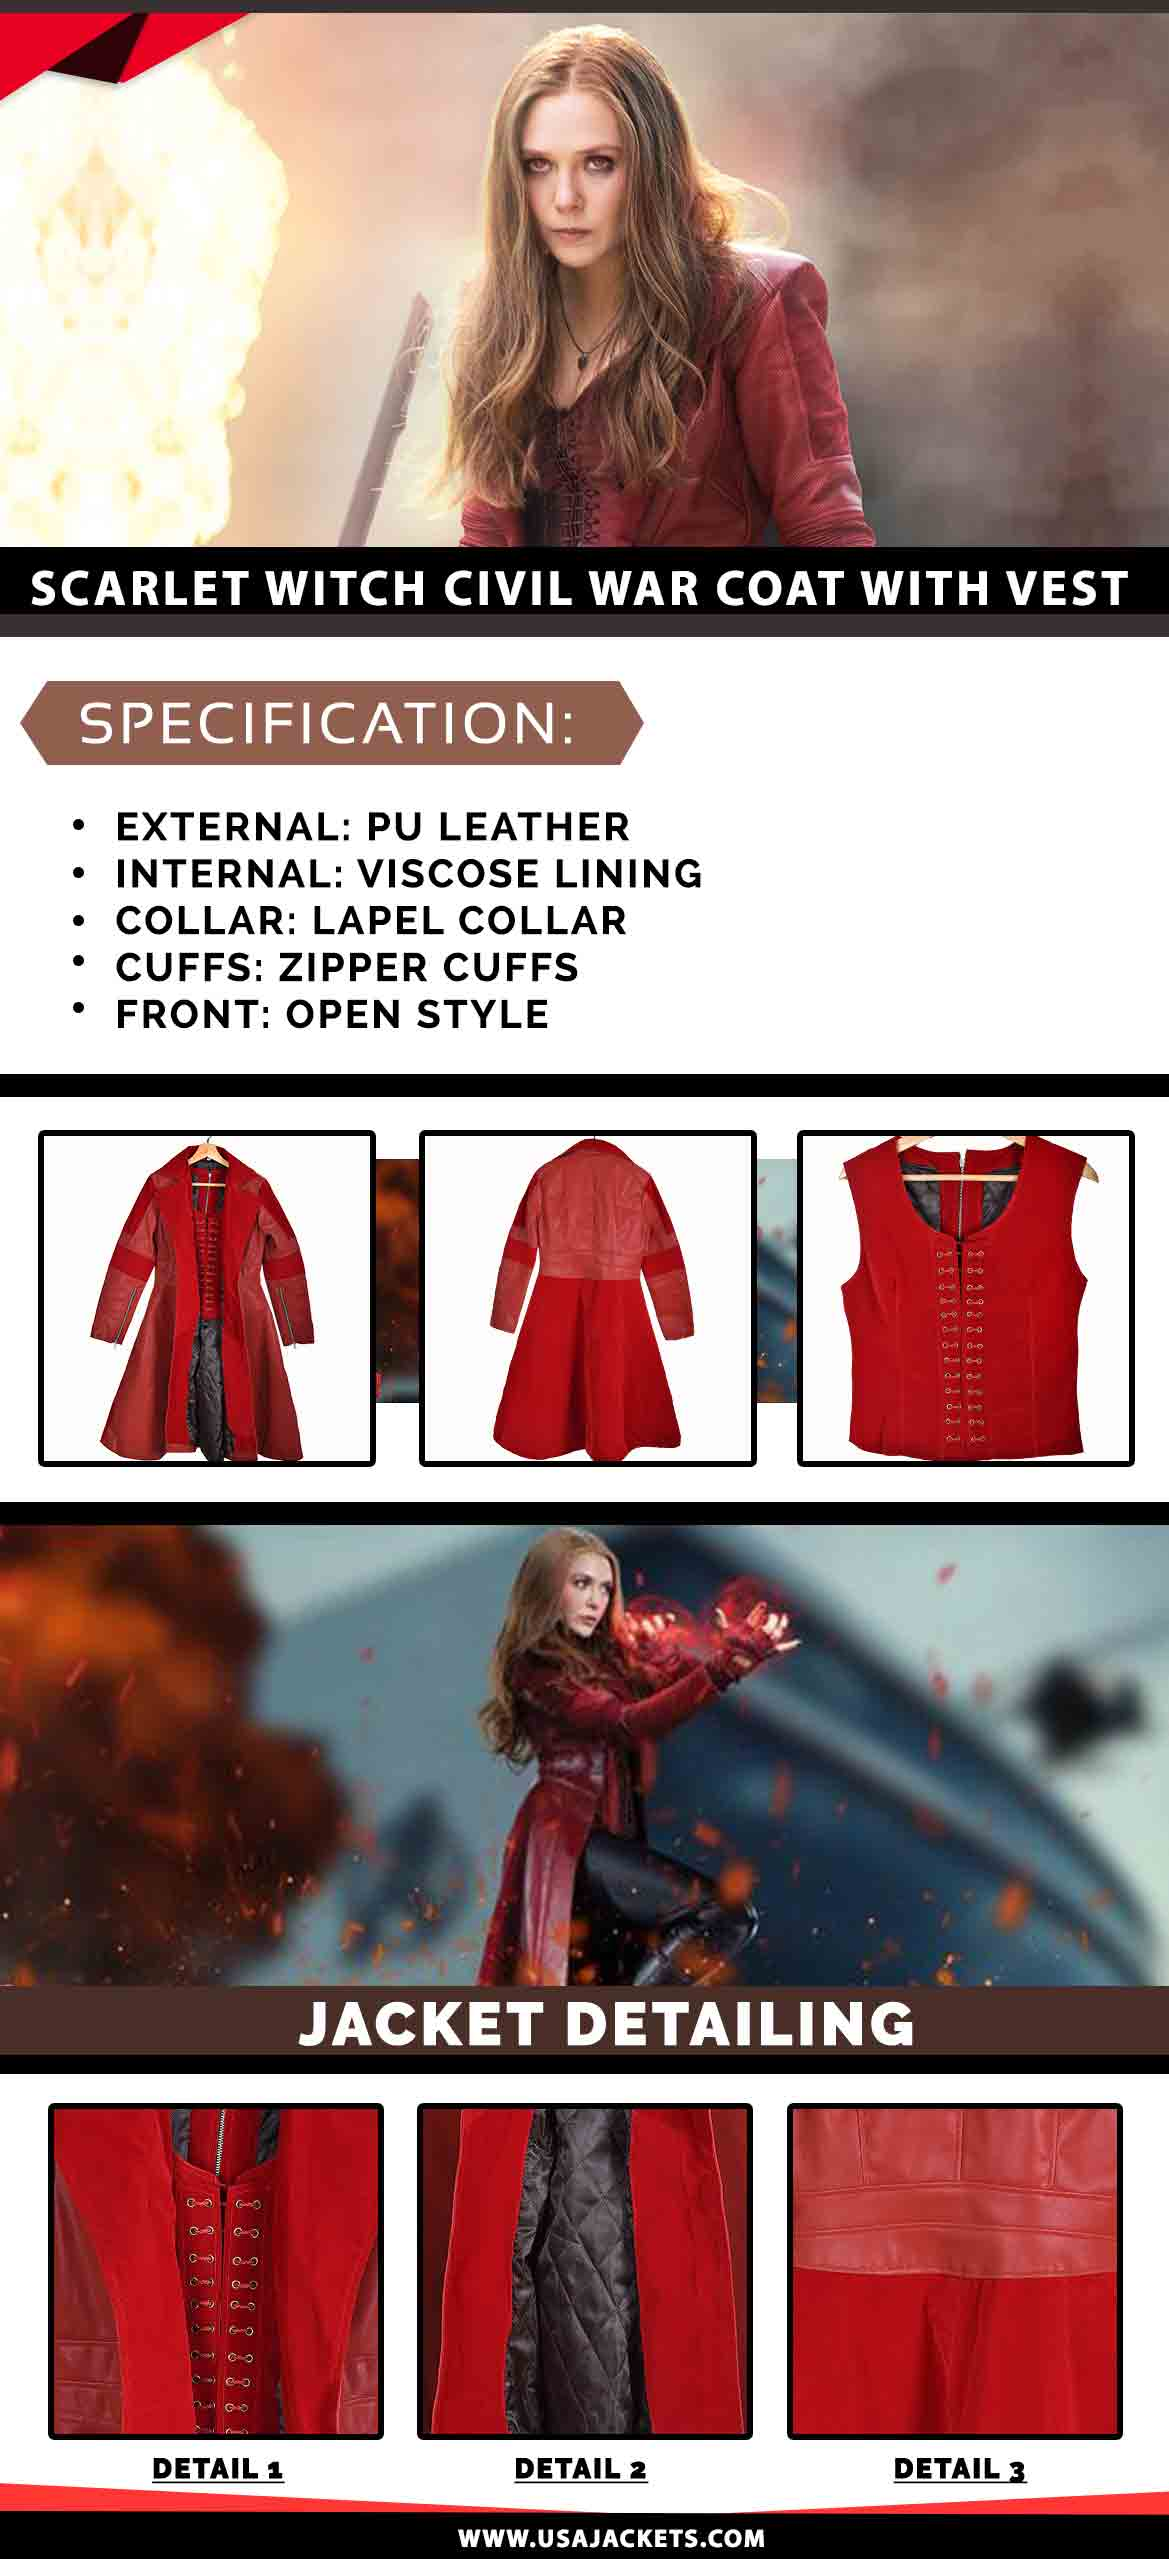 Scarlet Witch Coat With Vest